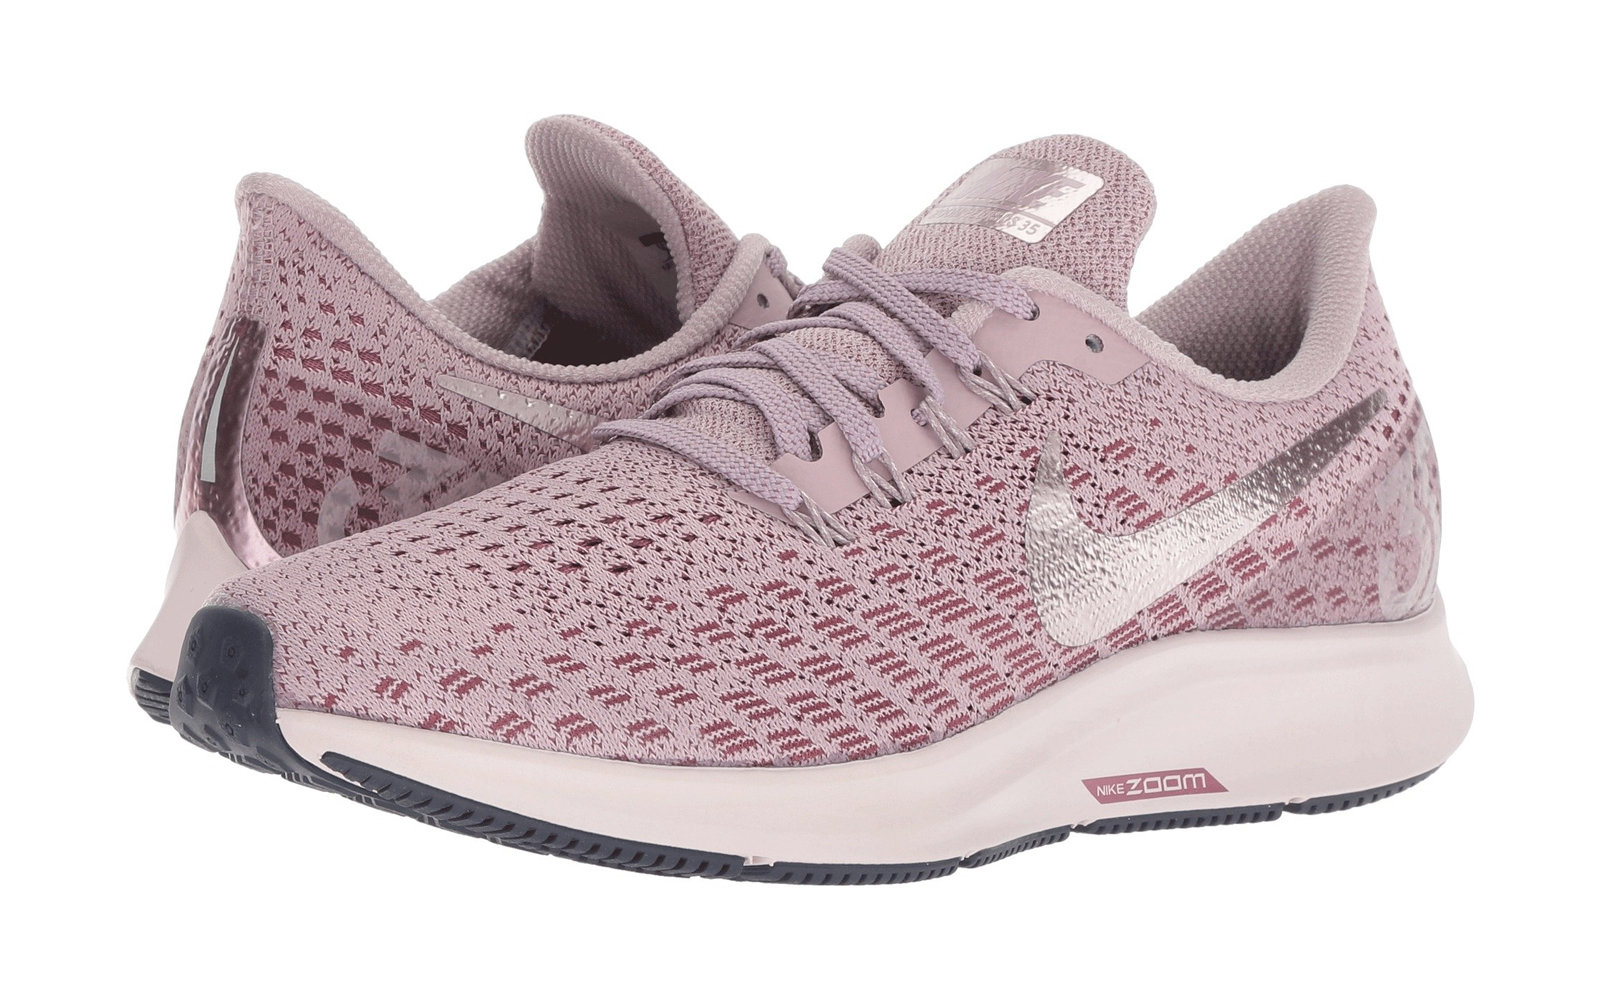 Nike Air Zoom Pegasus 35 in Elemental Rose/Barely Rose/Vintage Wine